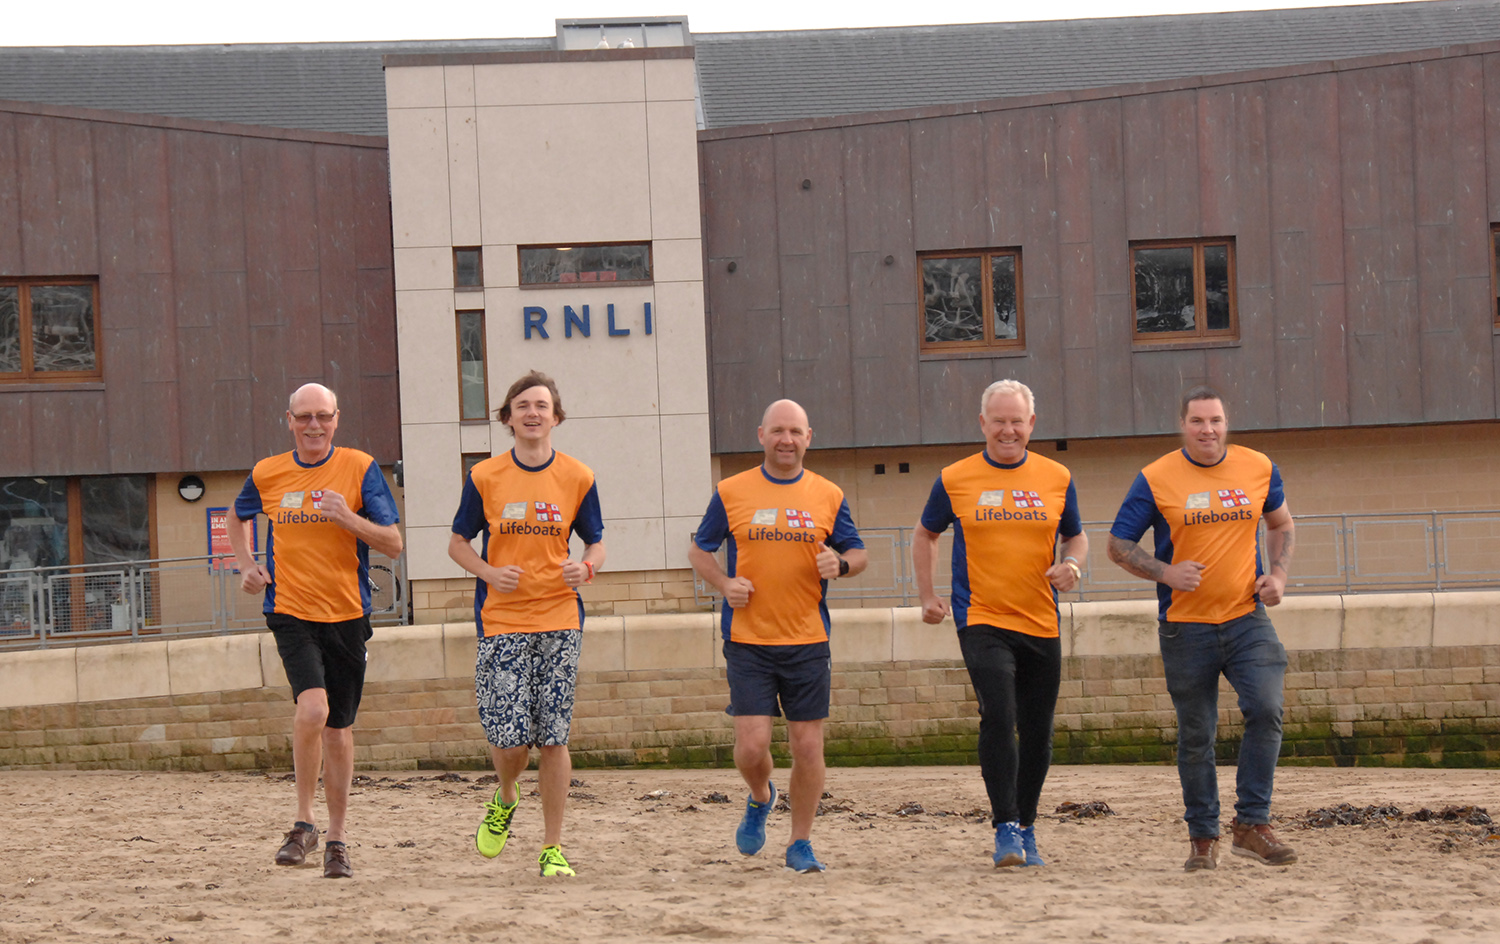 Some of the runners, L-R, Colin Woodhead, Matt Marks, Lee Marton, John Senior and Pete McGeown